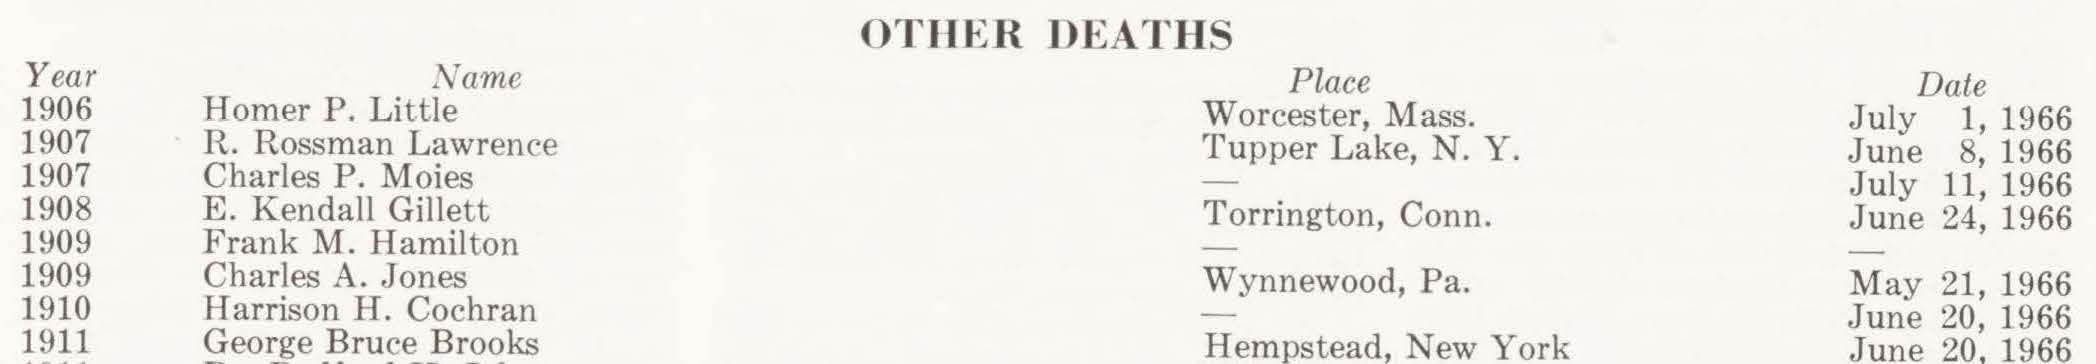 A clip from the August 1966 Alumni Review lists alumni deaths including E. K. Gillett.